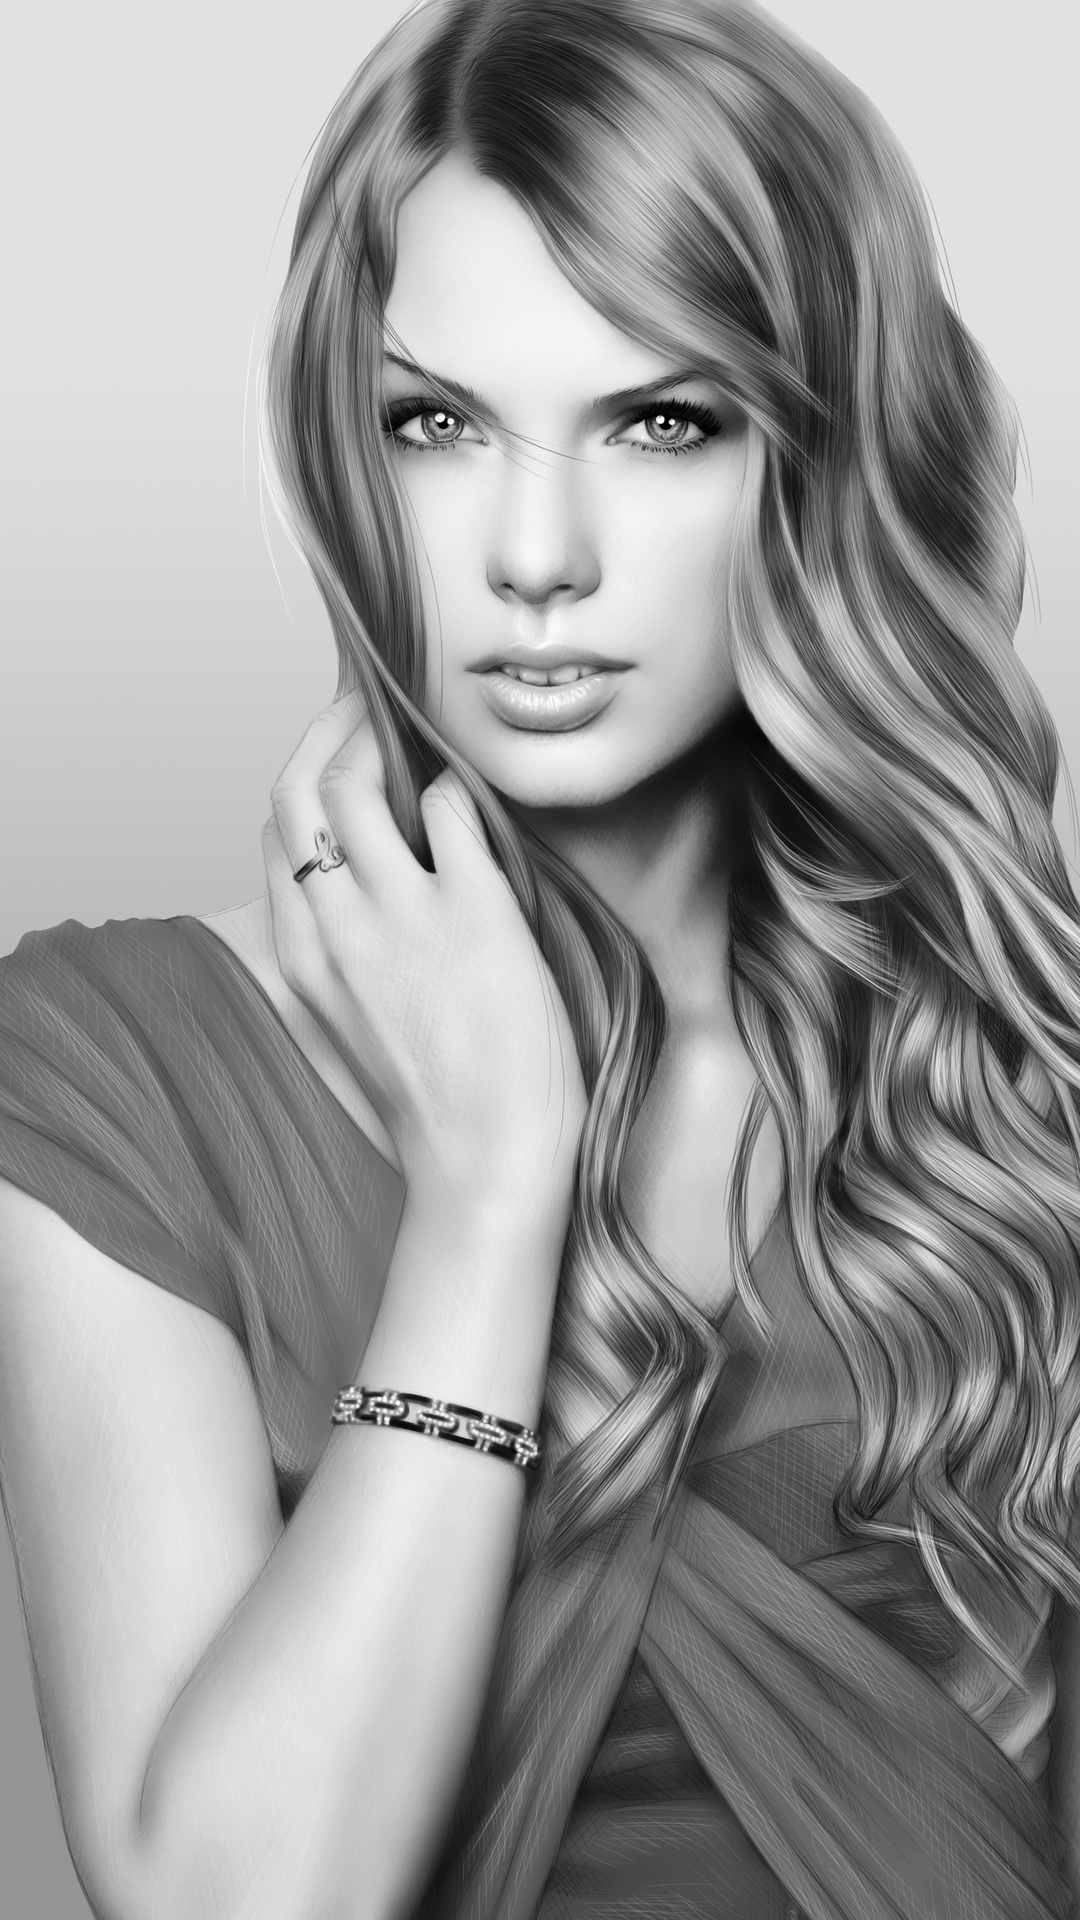 taylor-swift-digital-painting-8p.jpg